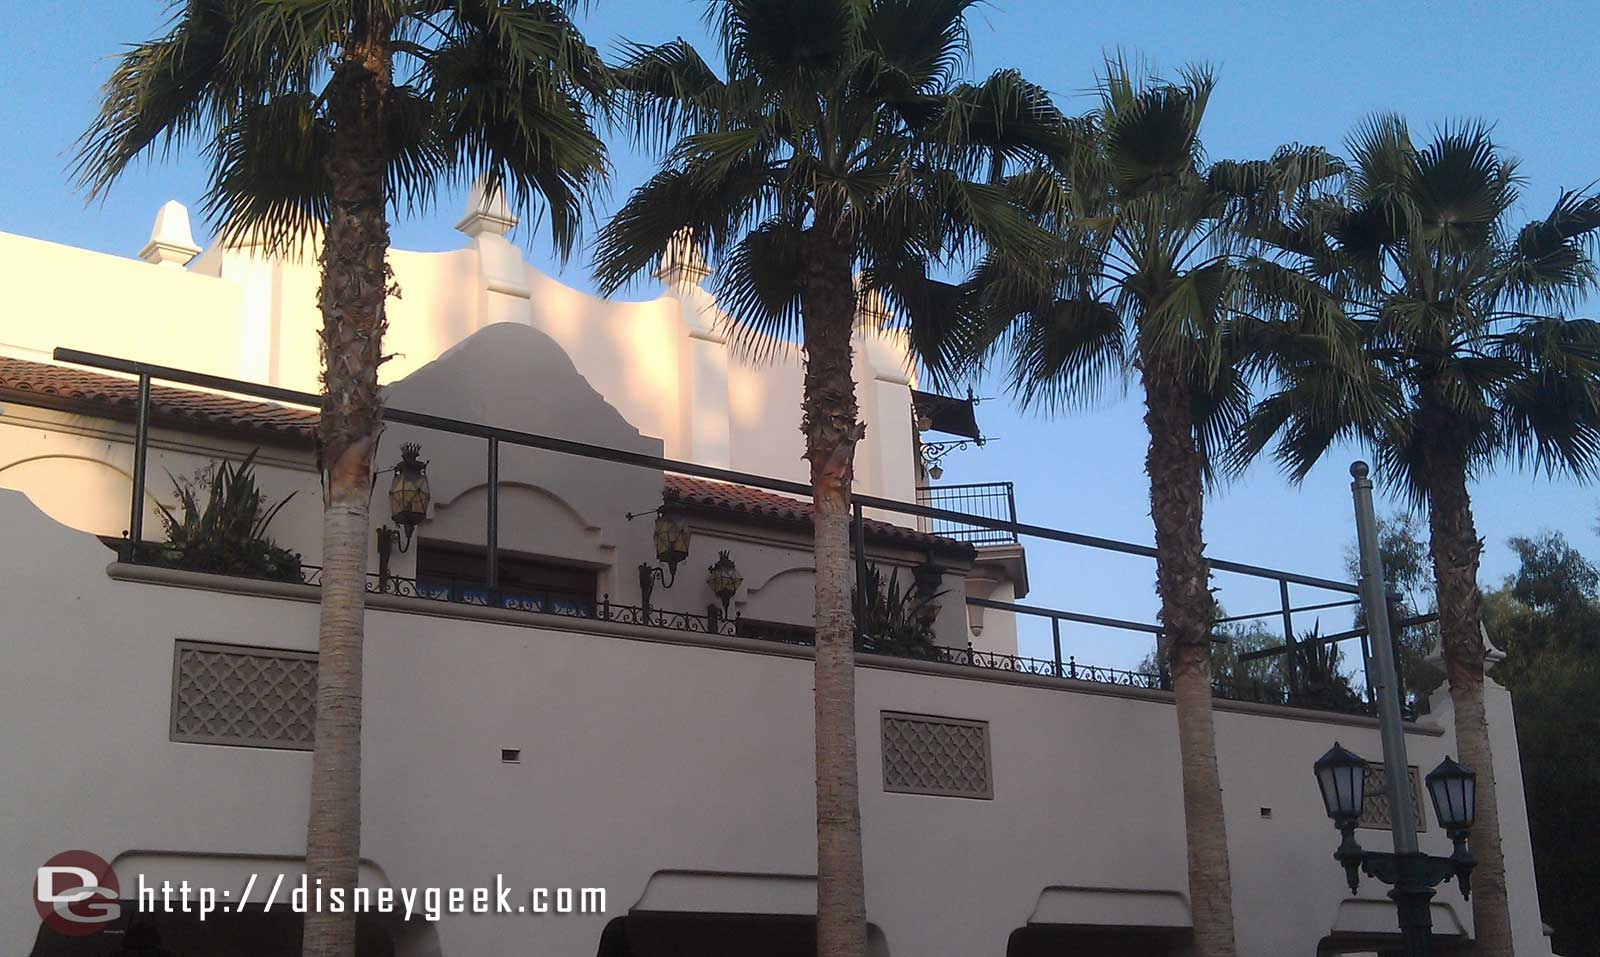 Looks like they are adding a shade structure to the patio seating of Carthay Circle